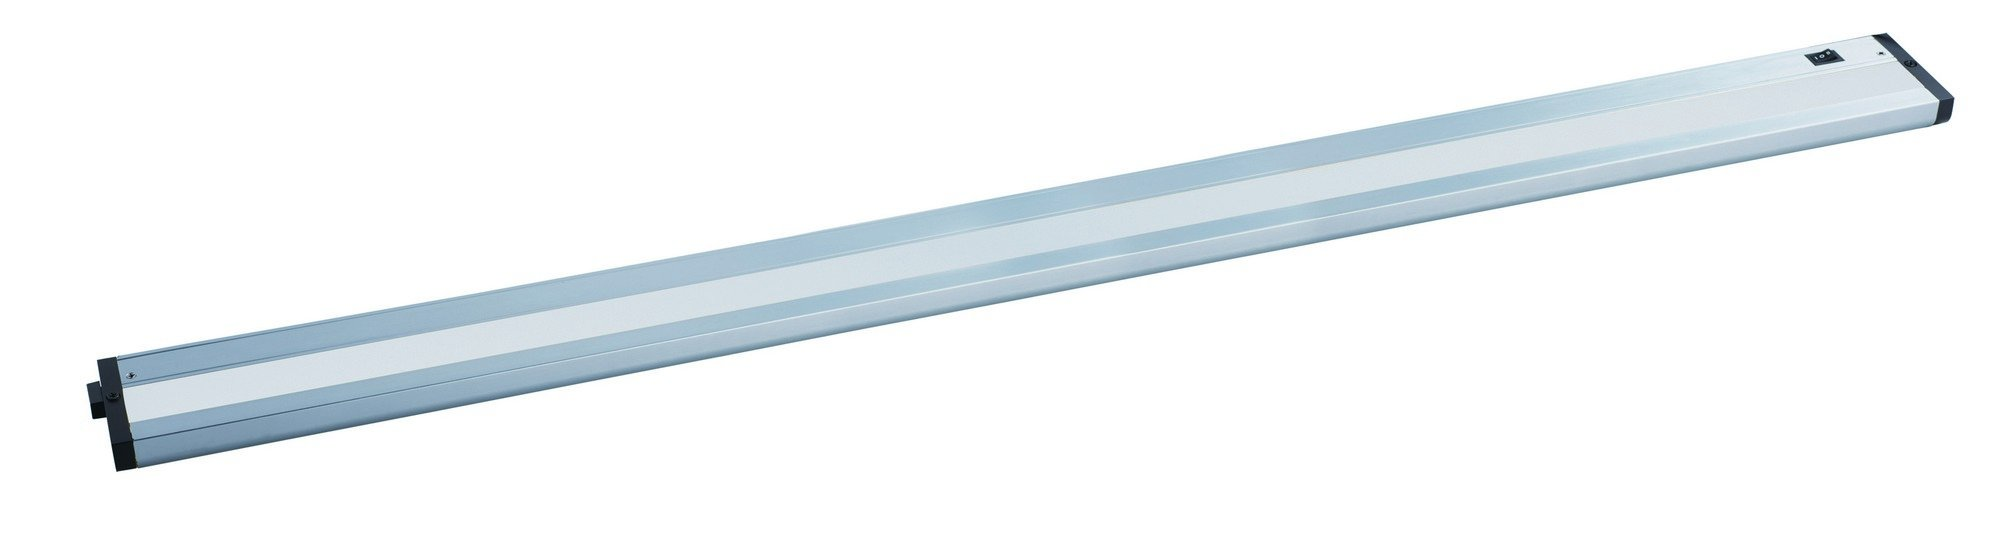 Maxim 89988AL CounterMax MX-L-120-2K 42'' 2700K or 3200K LED UC, Brushed Aluminum Finish, Clear Glass, PCB LED Bulb , 50W Max., Wet Safety Rating, Shade Material, Rated Lumens